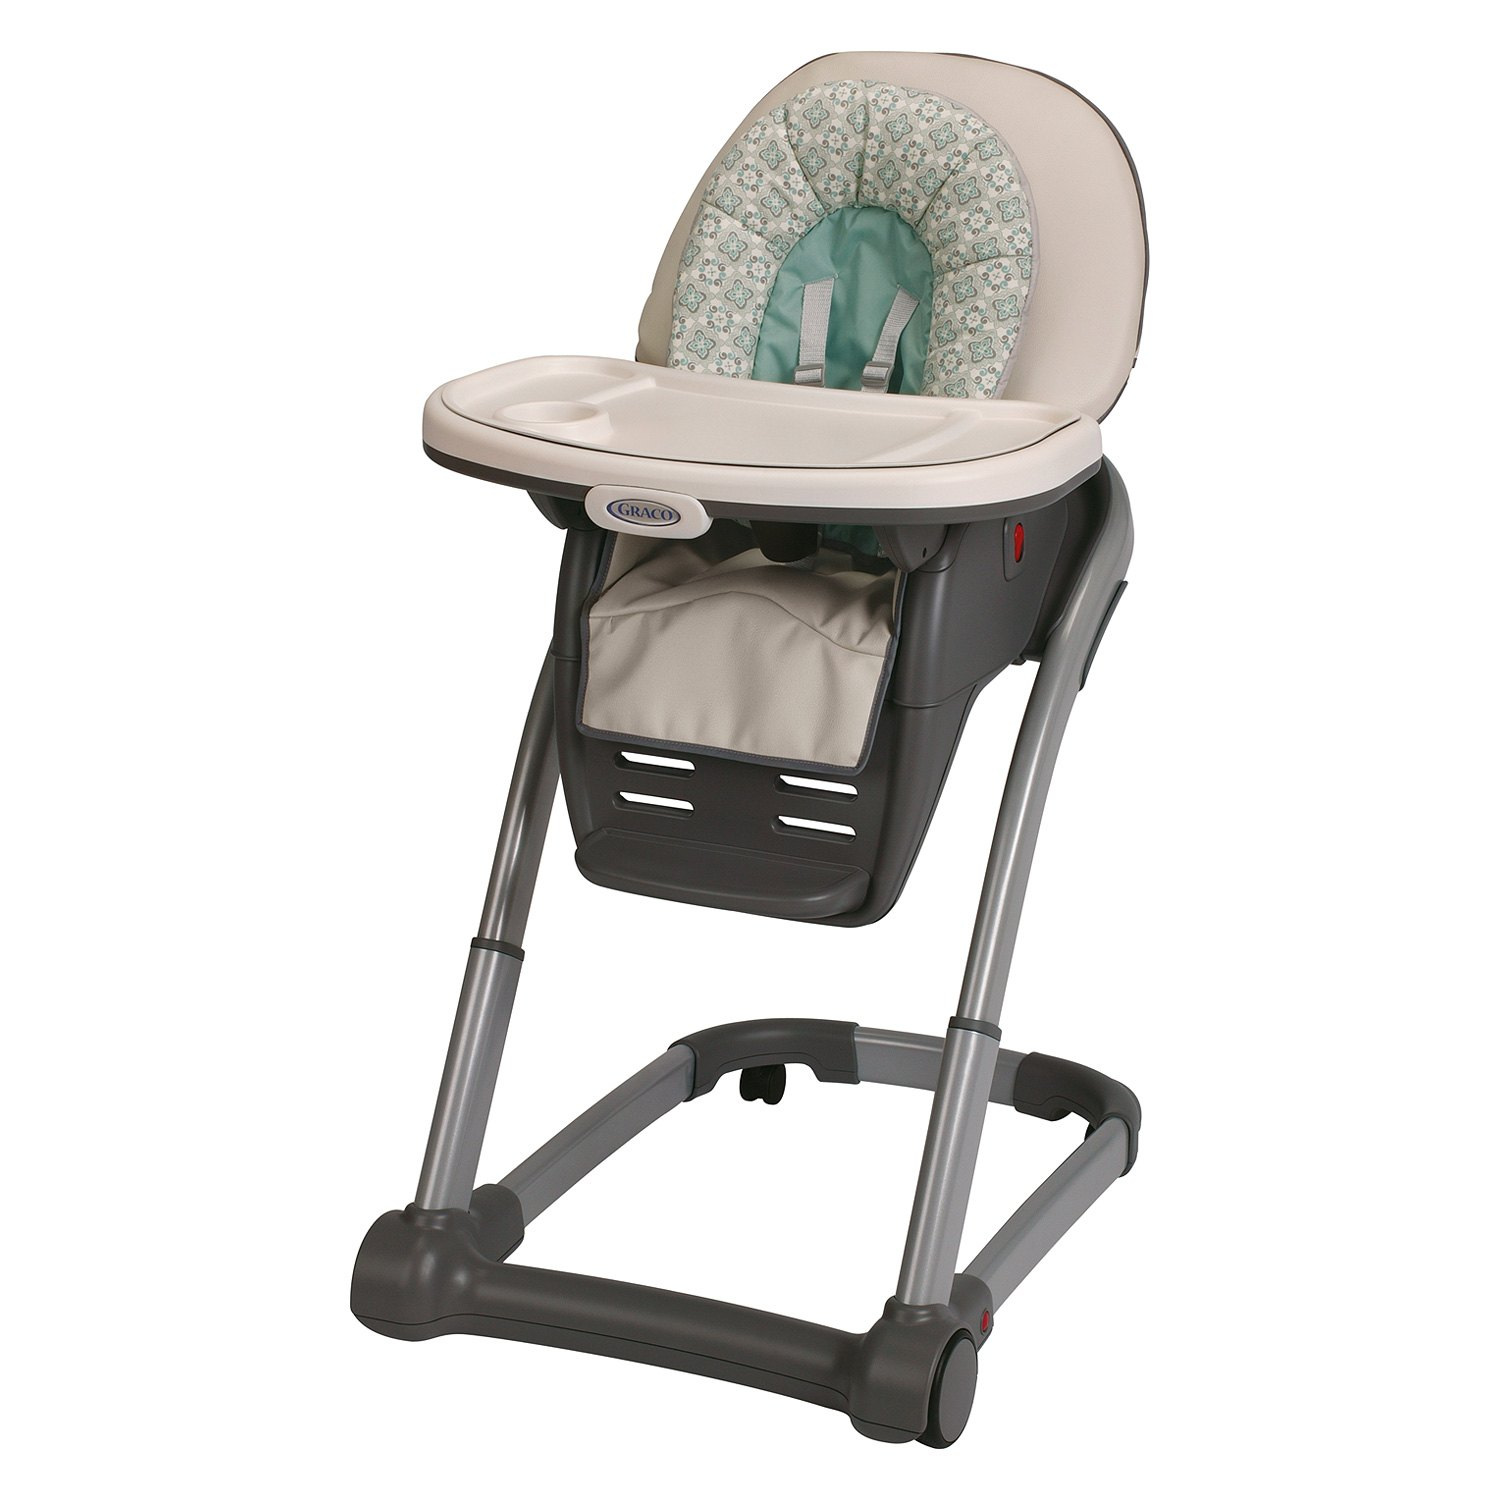 2017 05 graco blossom high chair colors - Graco Baby Blossom Mckinley Style 4 In 1 Seating Systemgraco Baby Blossom Fifer Style 4 In 1 Seating Systemgraco Baby Blossom Vance Style 4 In 1